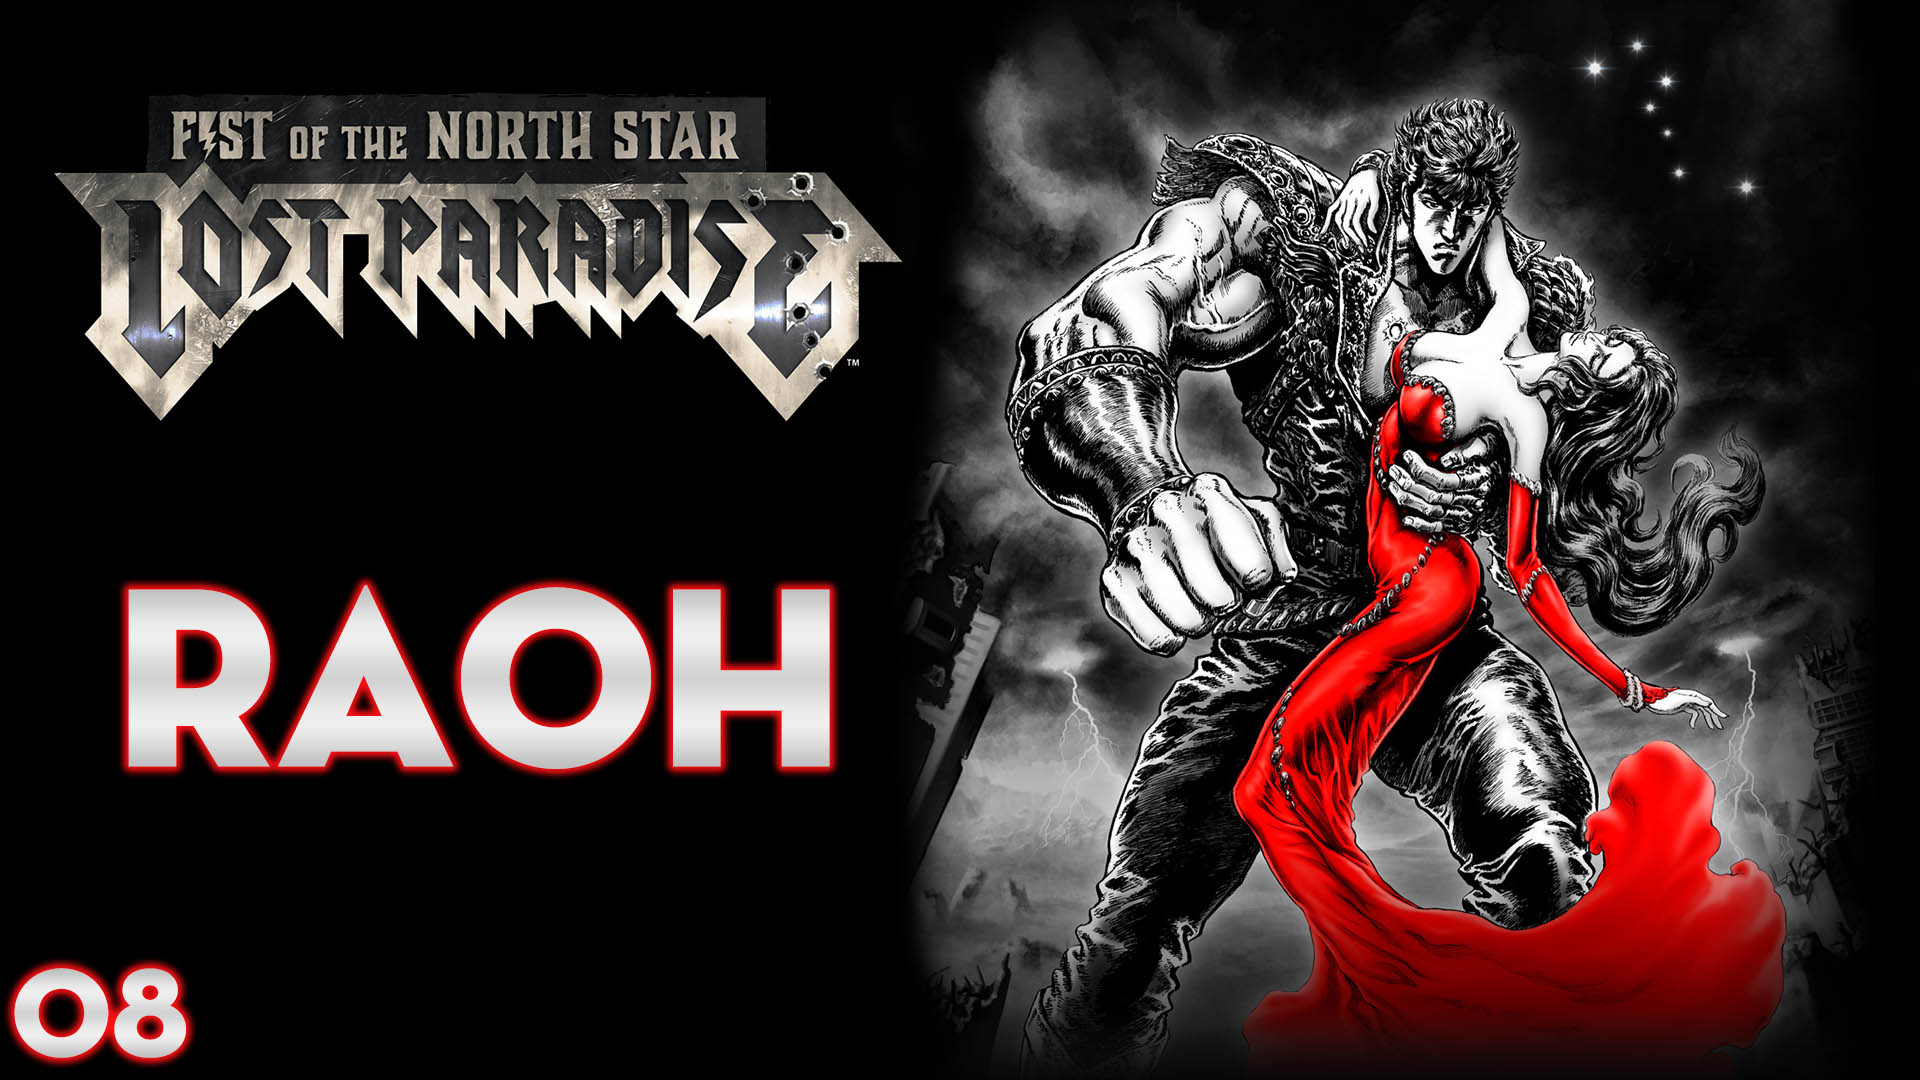 Serie Fist of the North Star: Lost Paradise #08 – Raoh